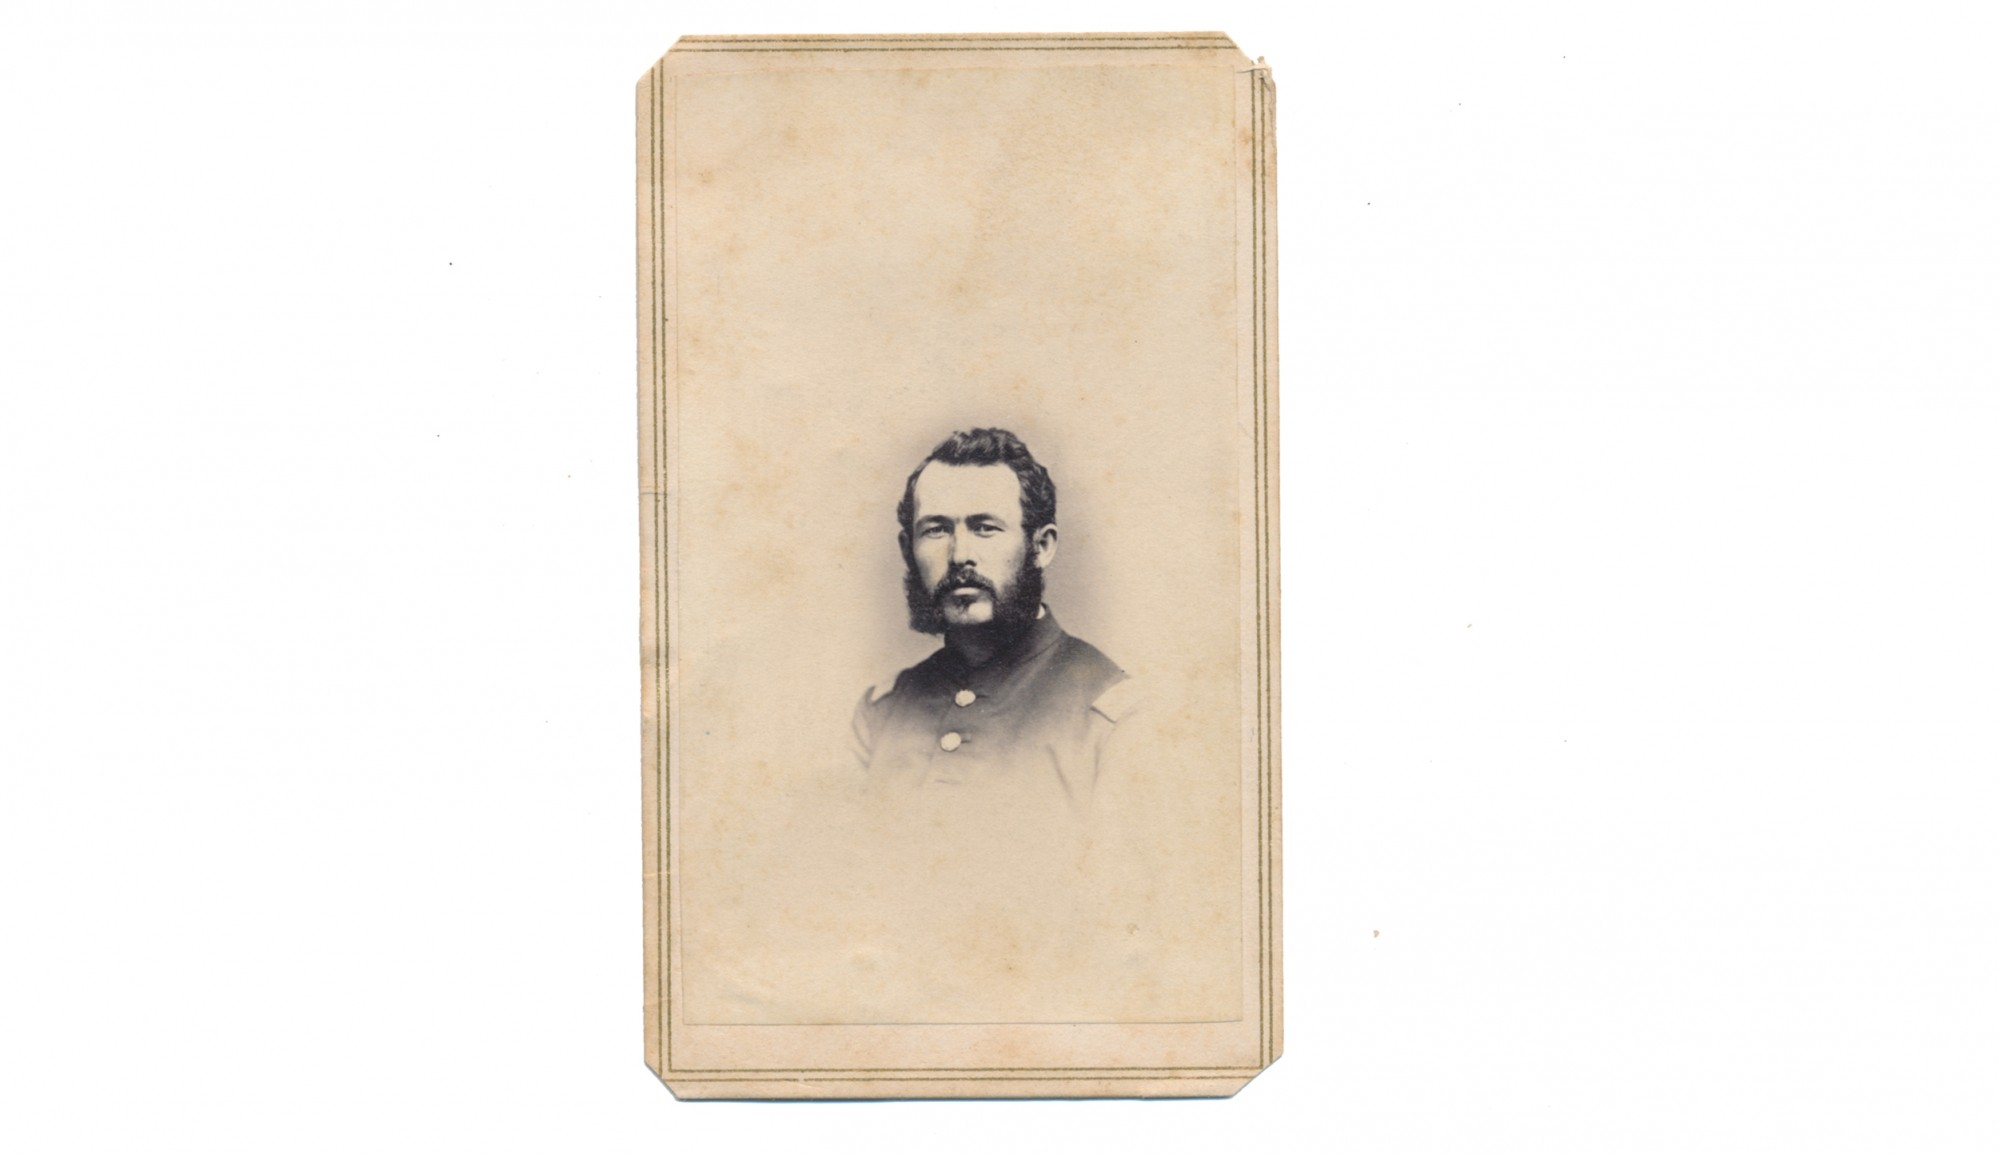 BUST VIEW CDV OF 10TH VERMONT AND 39TH USCT OFFICER